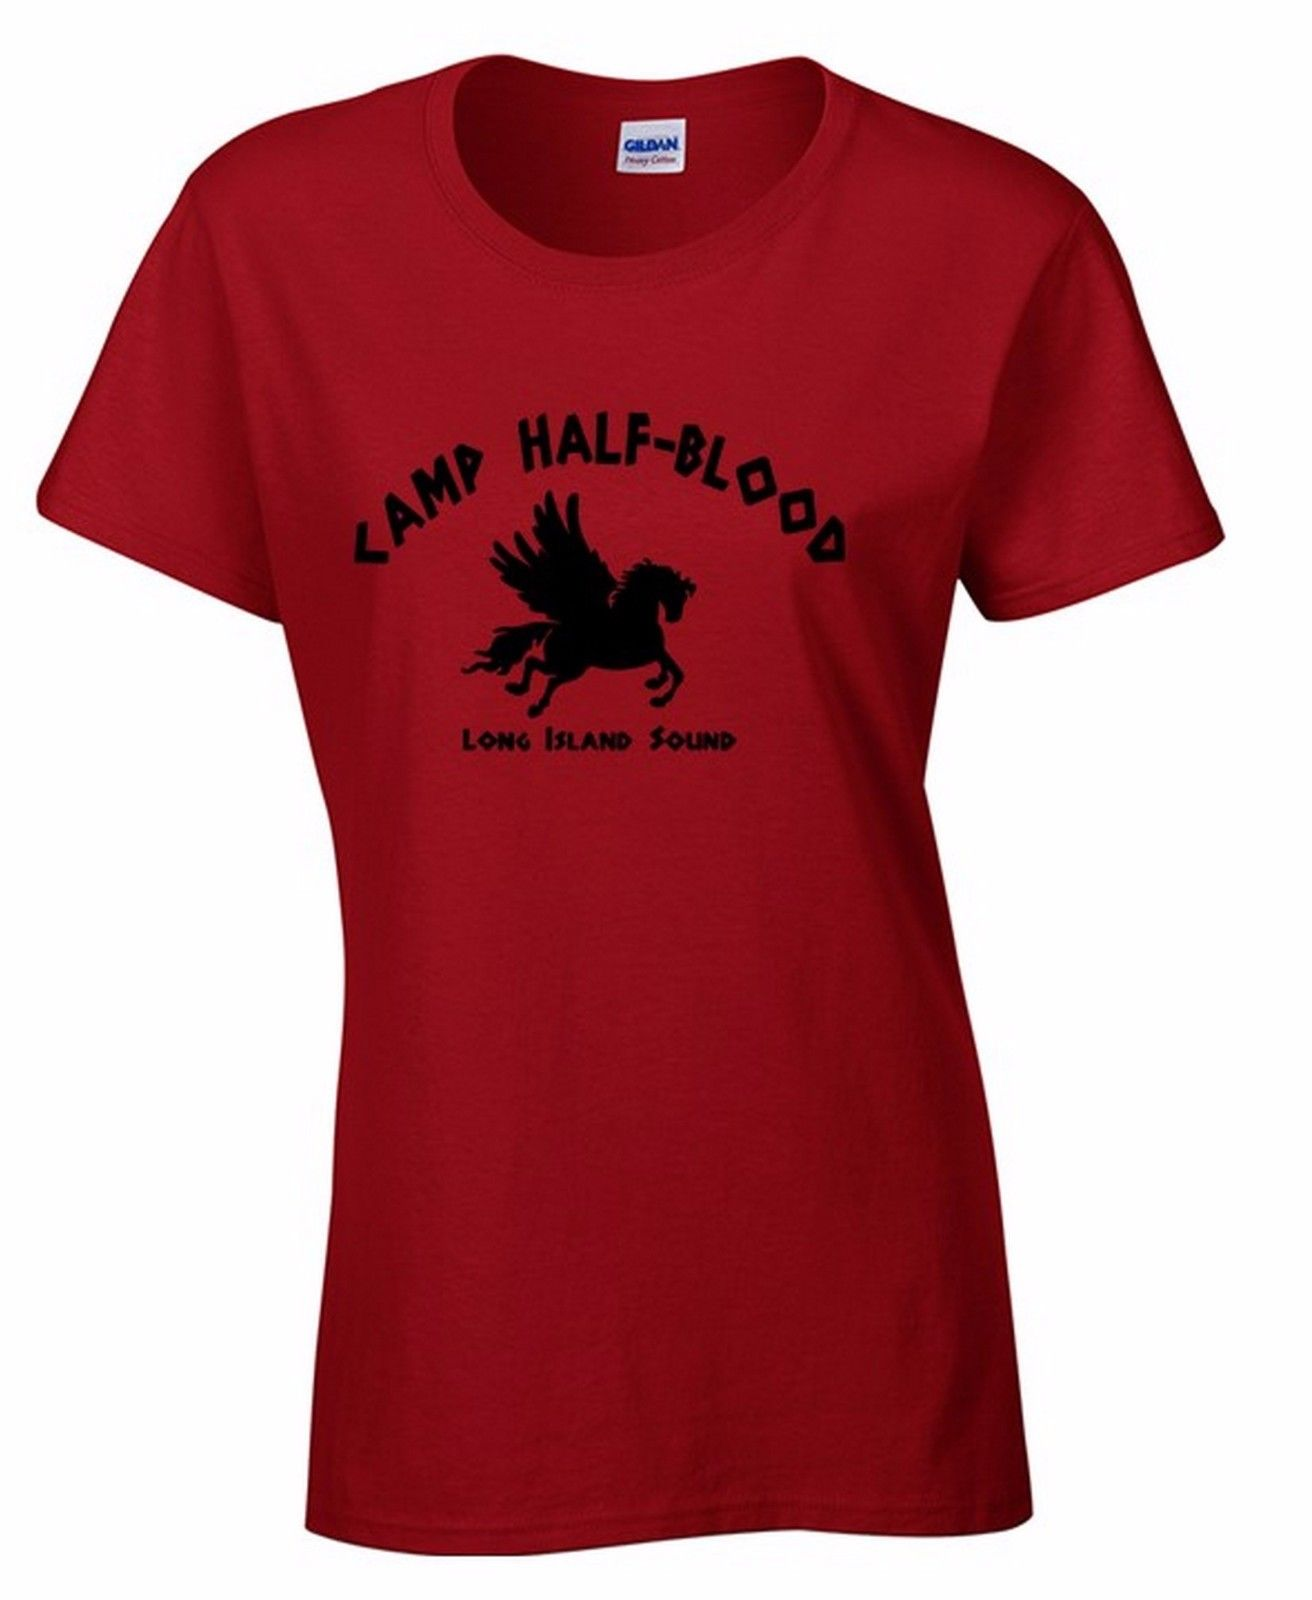 Camp Half-Blood Long Island Sound WOMAN T-shirt Demi-God Greek Gods Shirt Punk T Shirt Fashion Short Sleeve O-Neck image